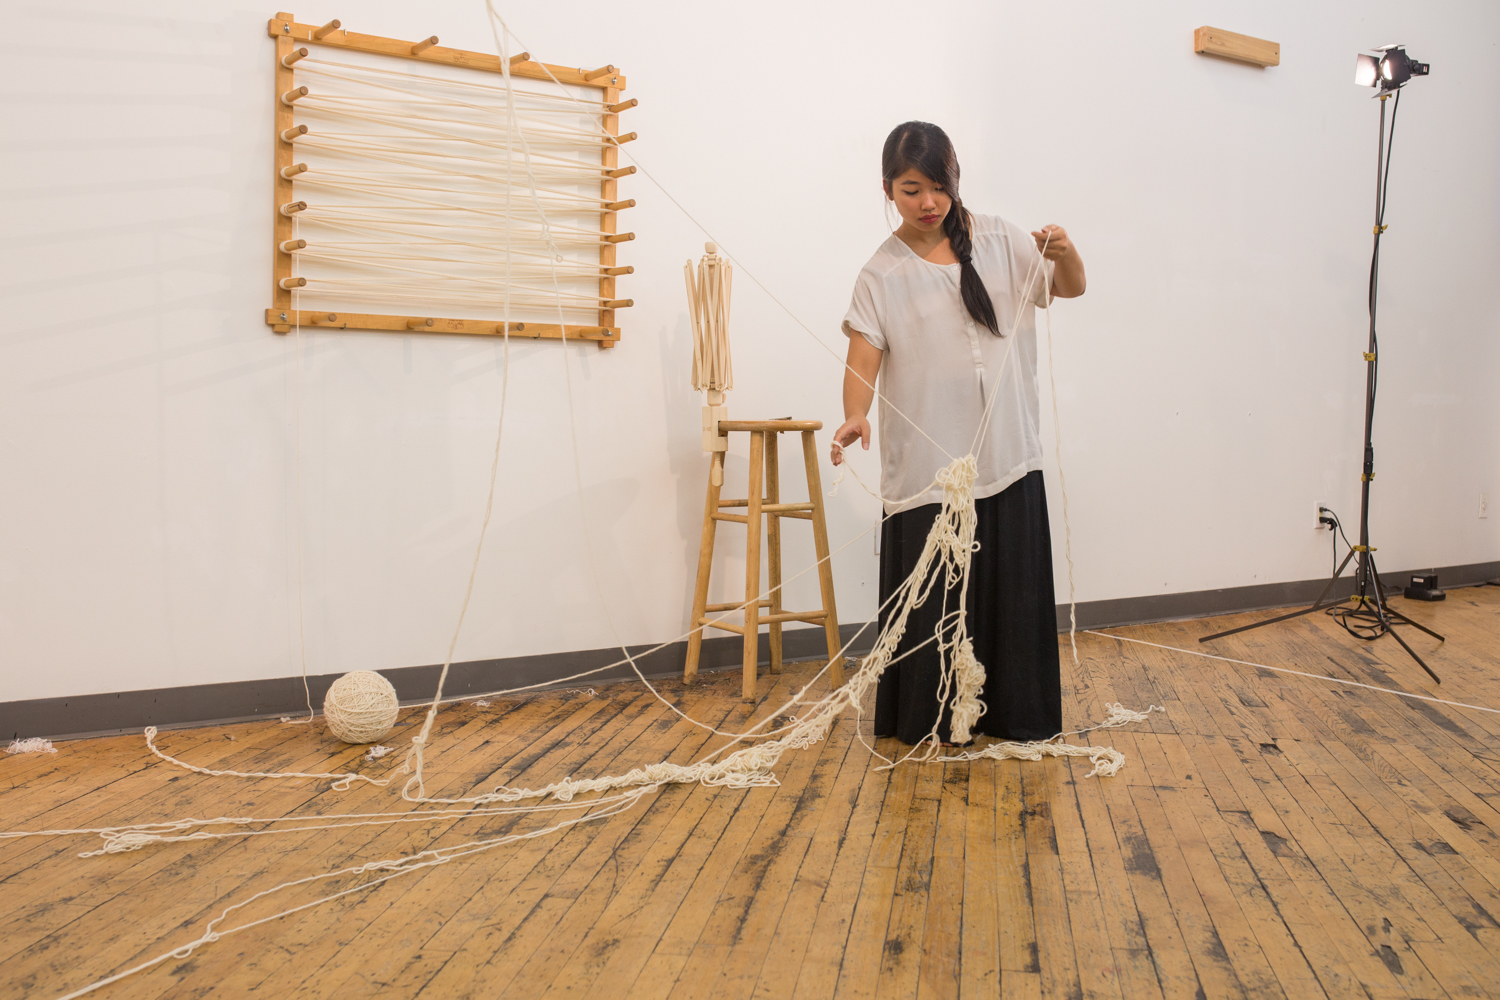 Only one strand of knotted yarn is suspended in the air while the rest is on the floor.